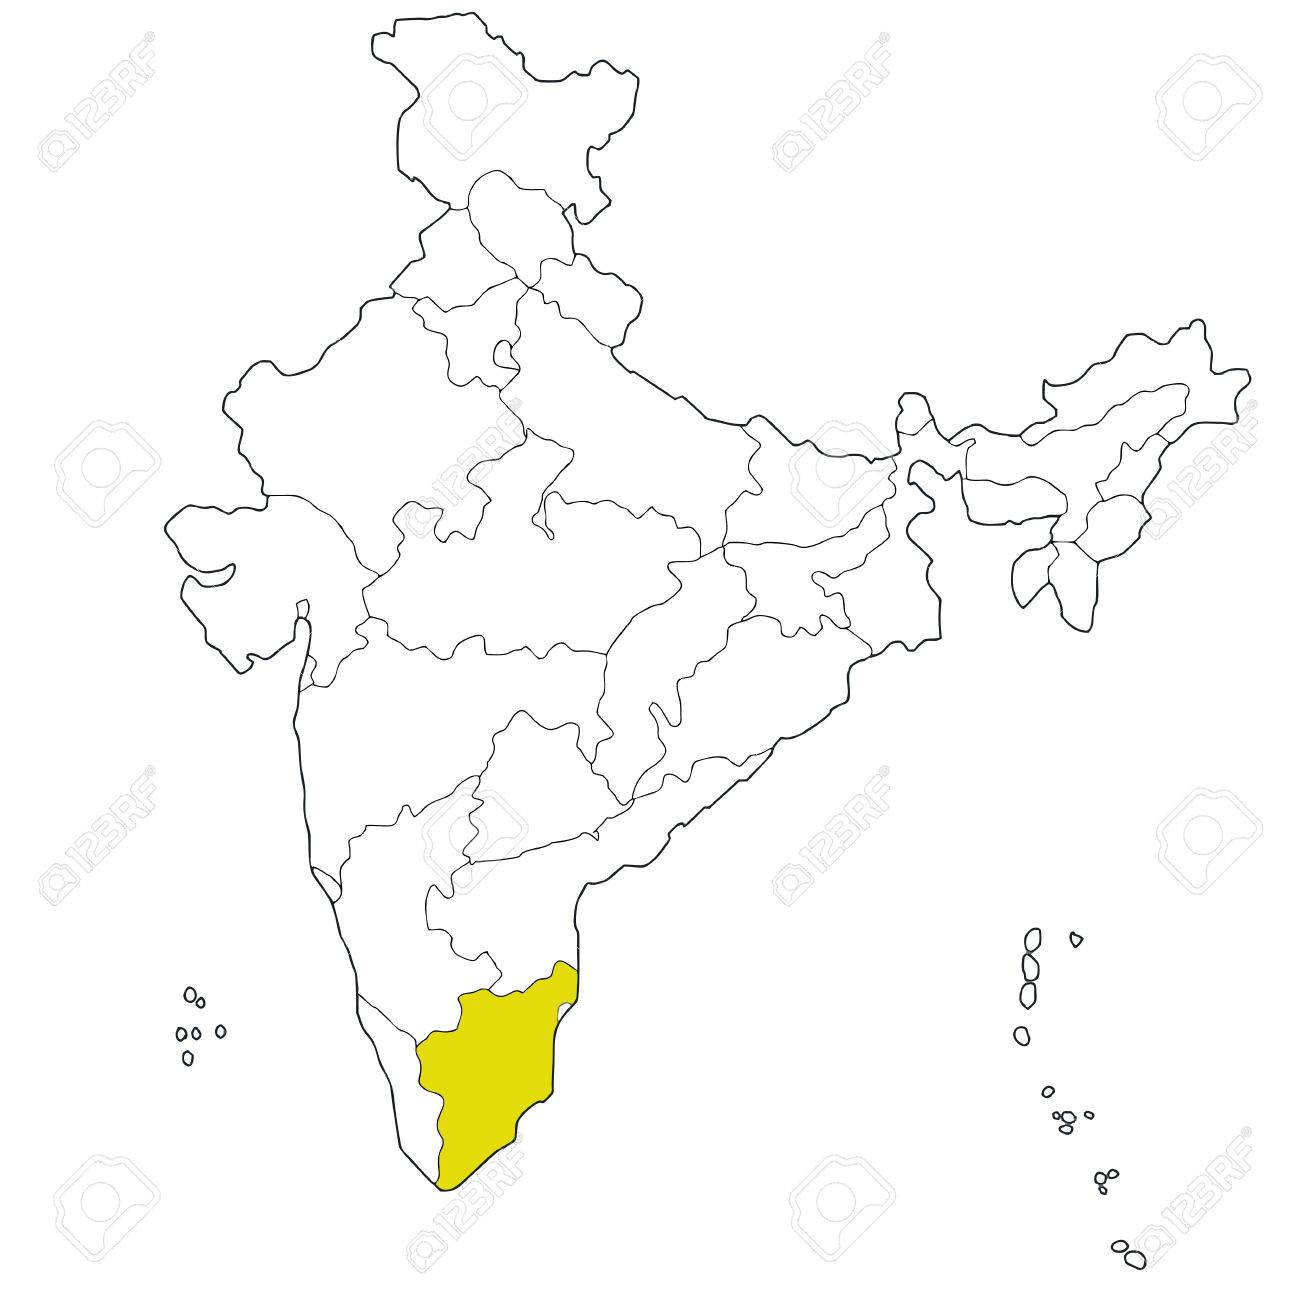 Southern State Map.Southern State Tamil Nadu On The Map Of India Royalty Free Cliparts